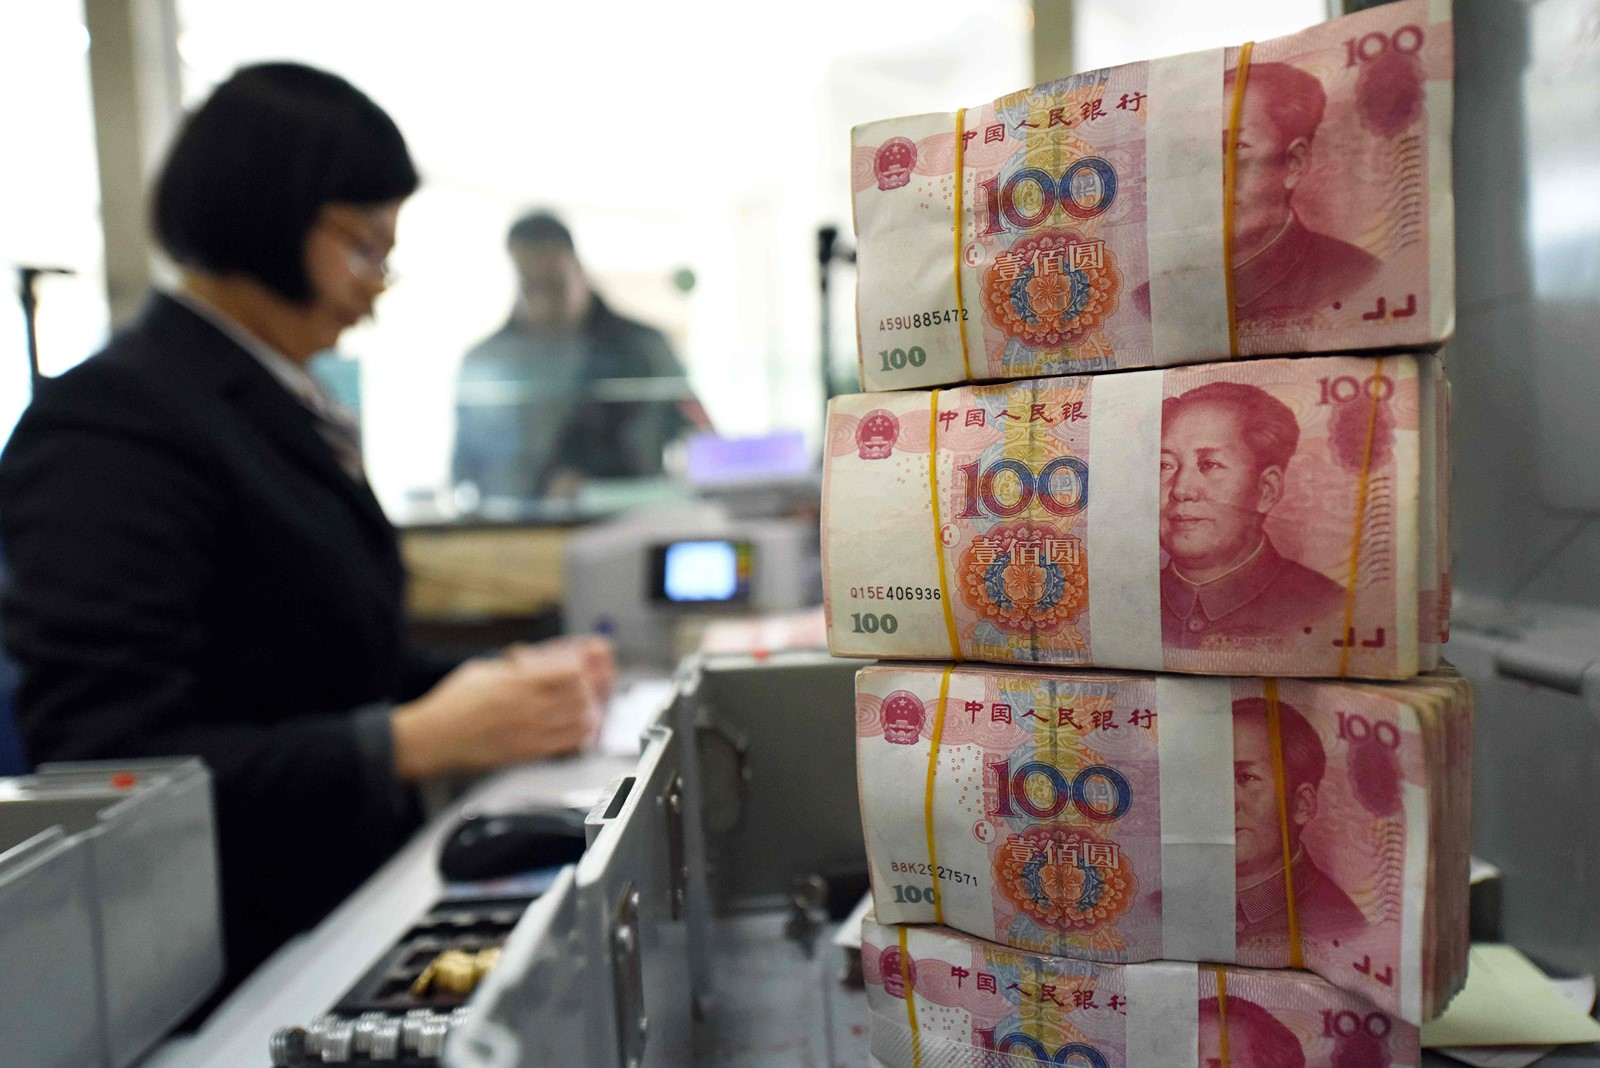 A bank employee counts 100-yuan notes in Lianyungang, in eastern China's Jiangsu province. — Photograph: Agence France-Presse/Getty Images.